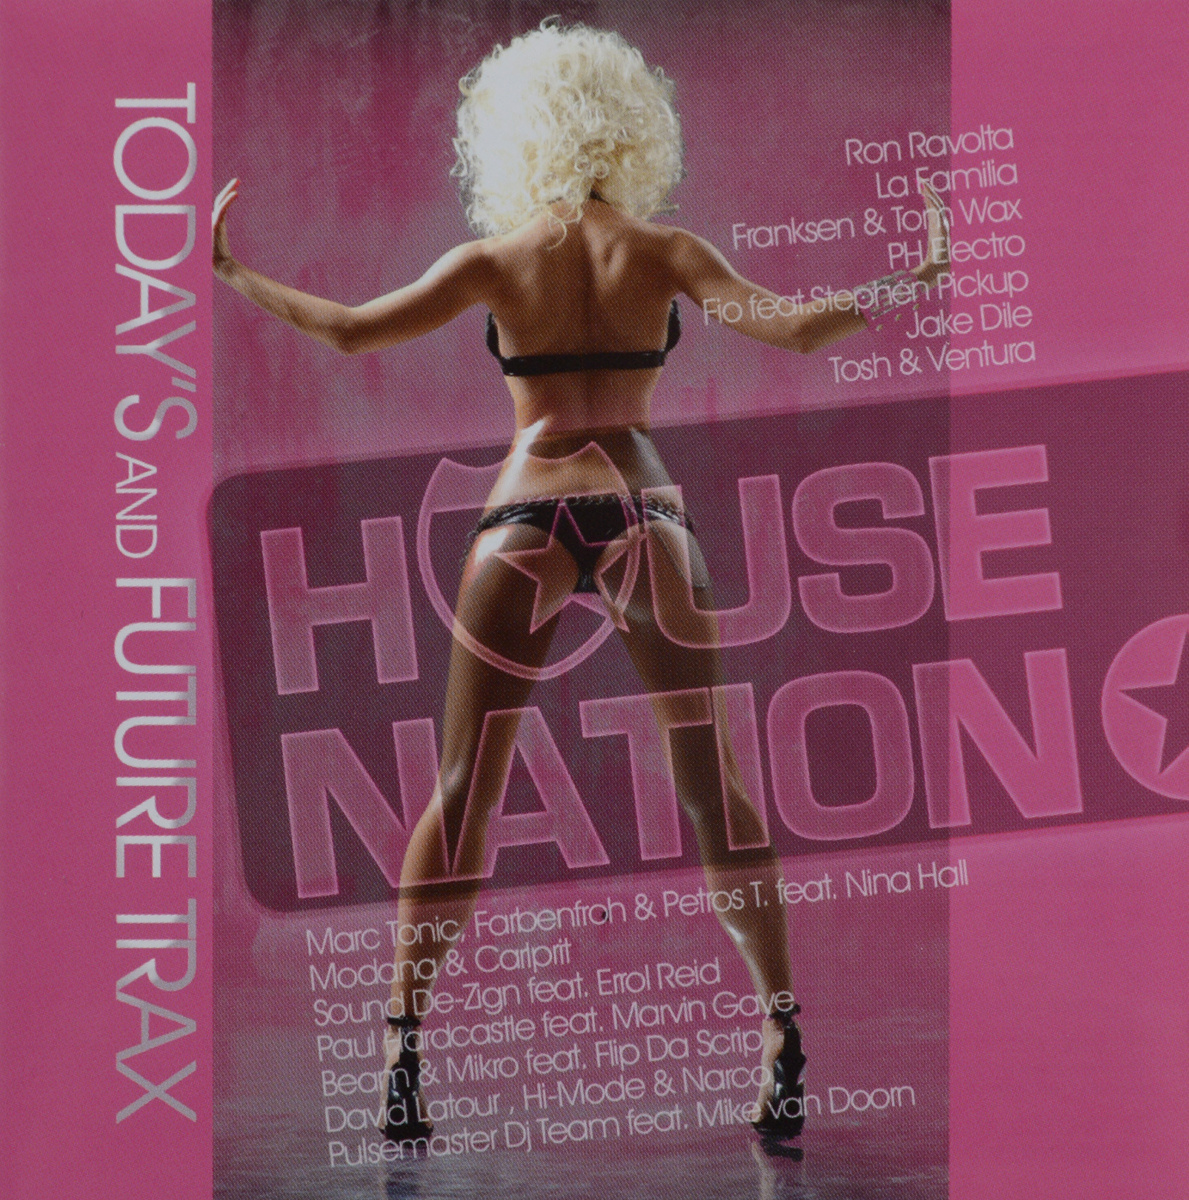 House Nation. Today's And Future Trax (2 CD) #1